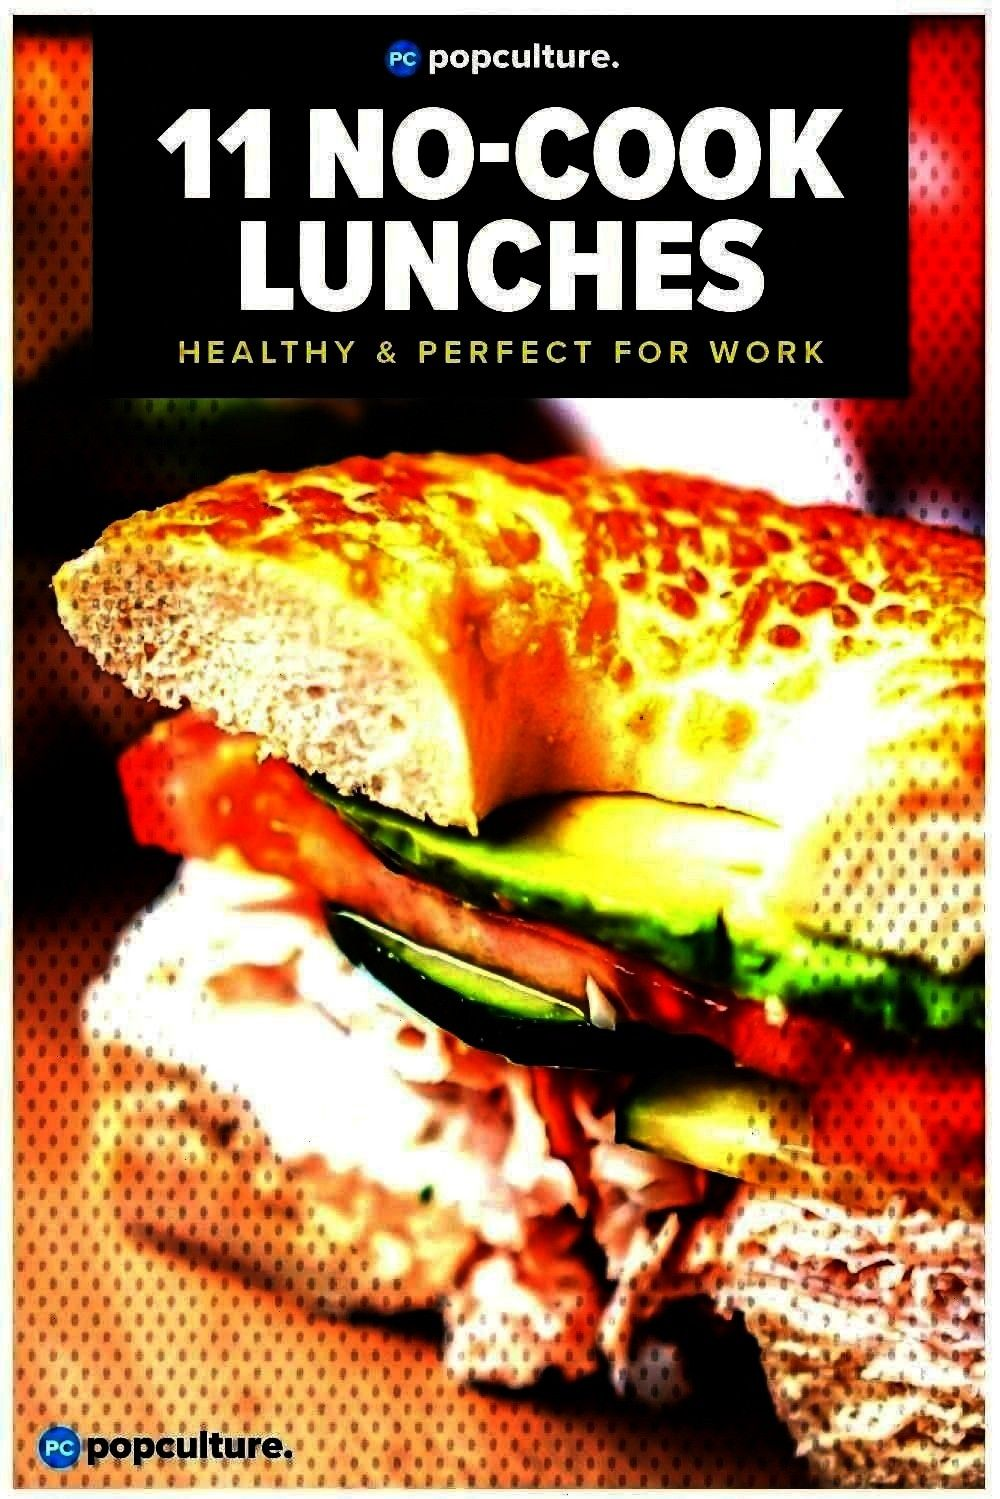 healthy lunch ideas that dont require much effort. These 11 easy Theres something to be said for